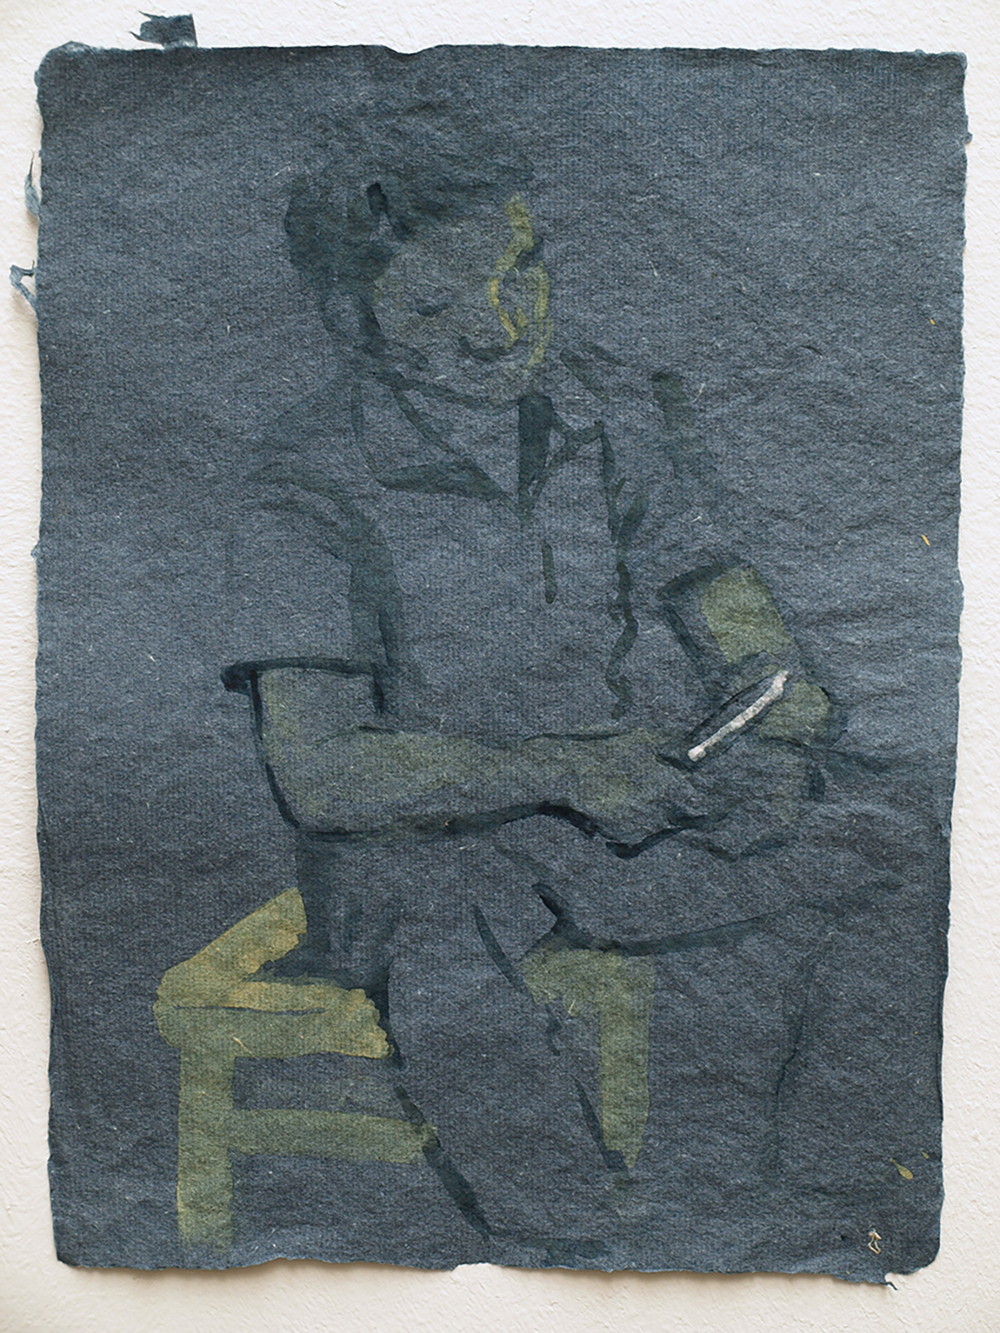 He Xiu Jun peeling bark for paper making, 2011